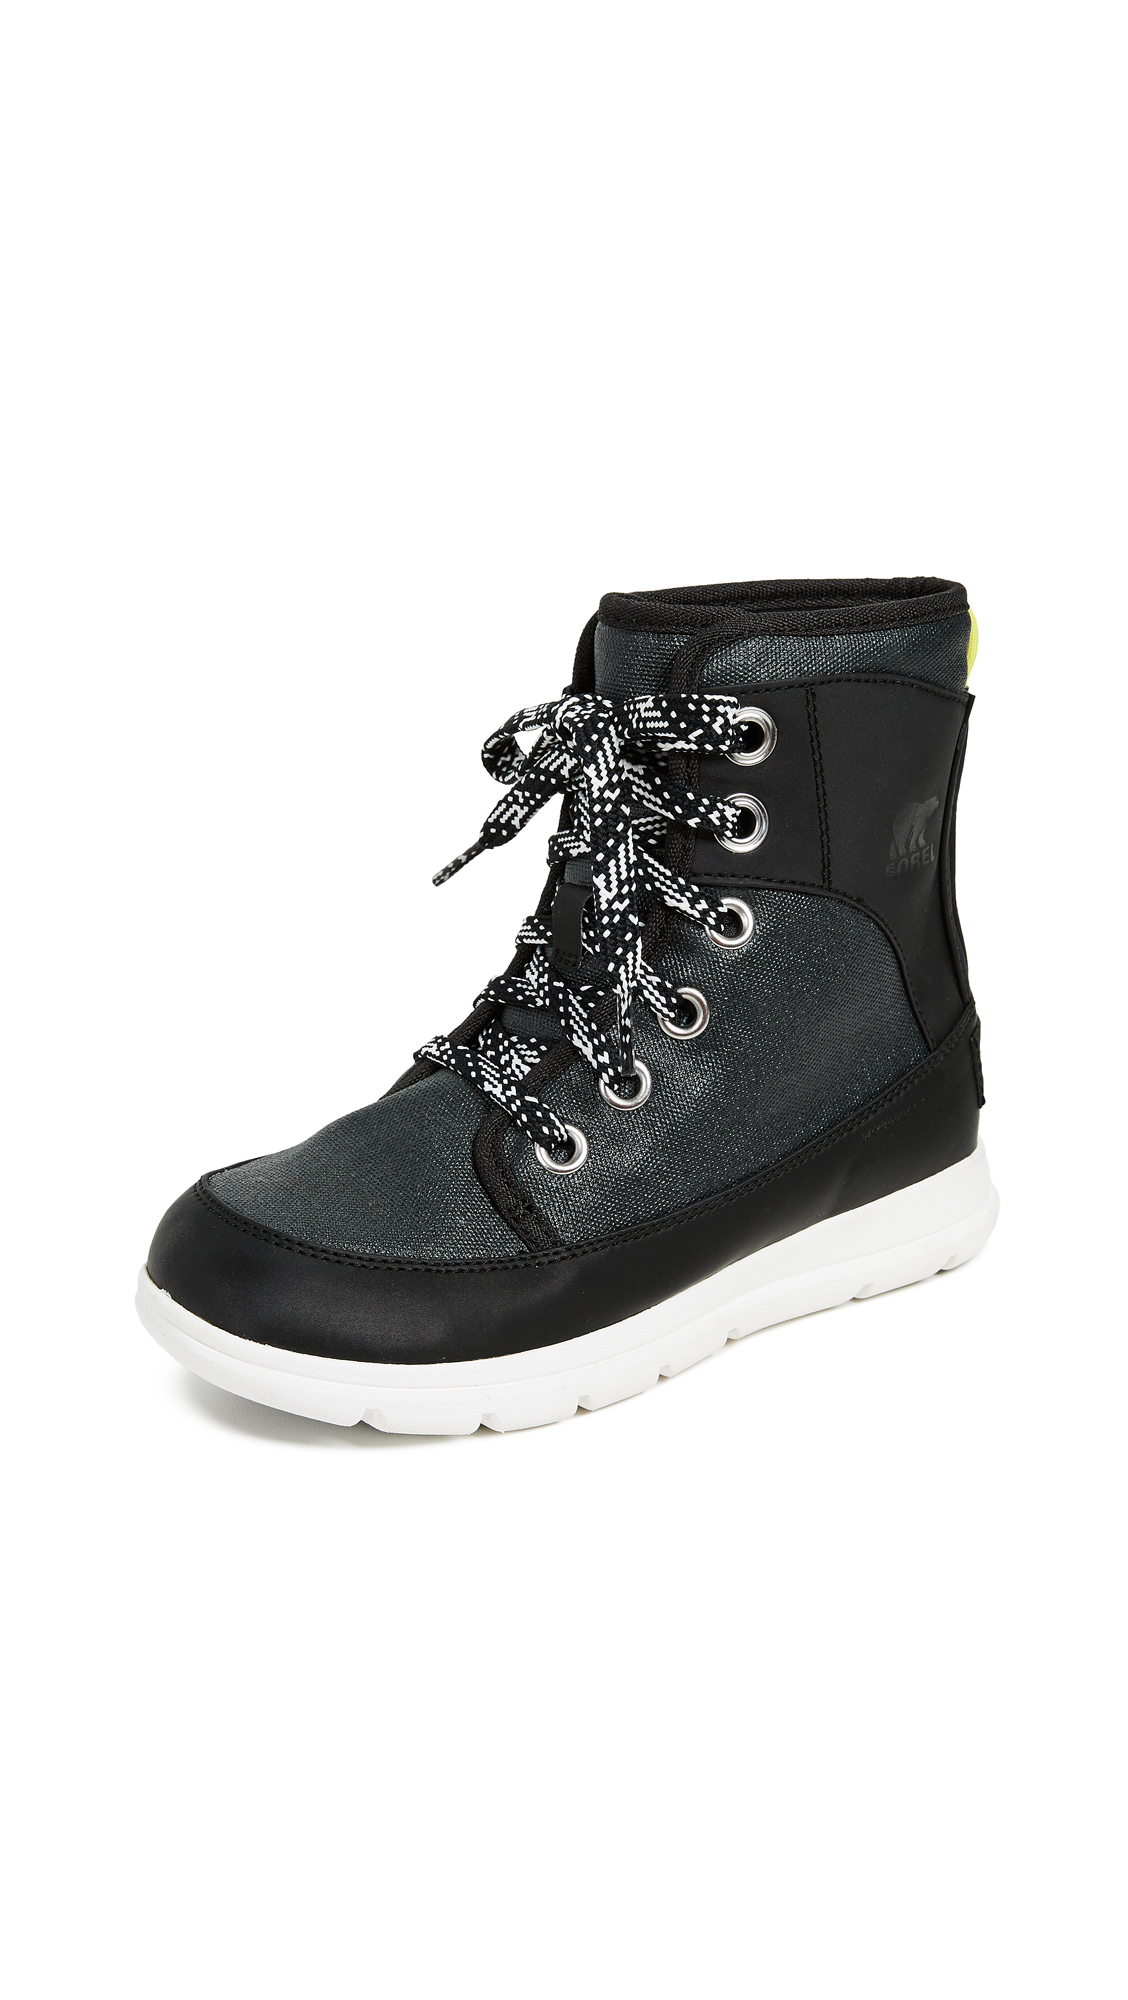 Sorel Sorel Explorer 1964 Booties - Black/Sea Salt